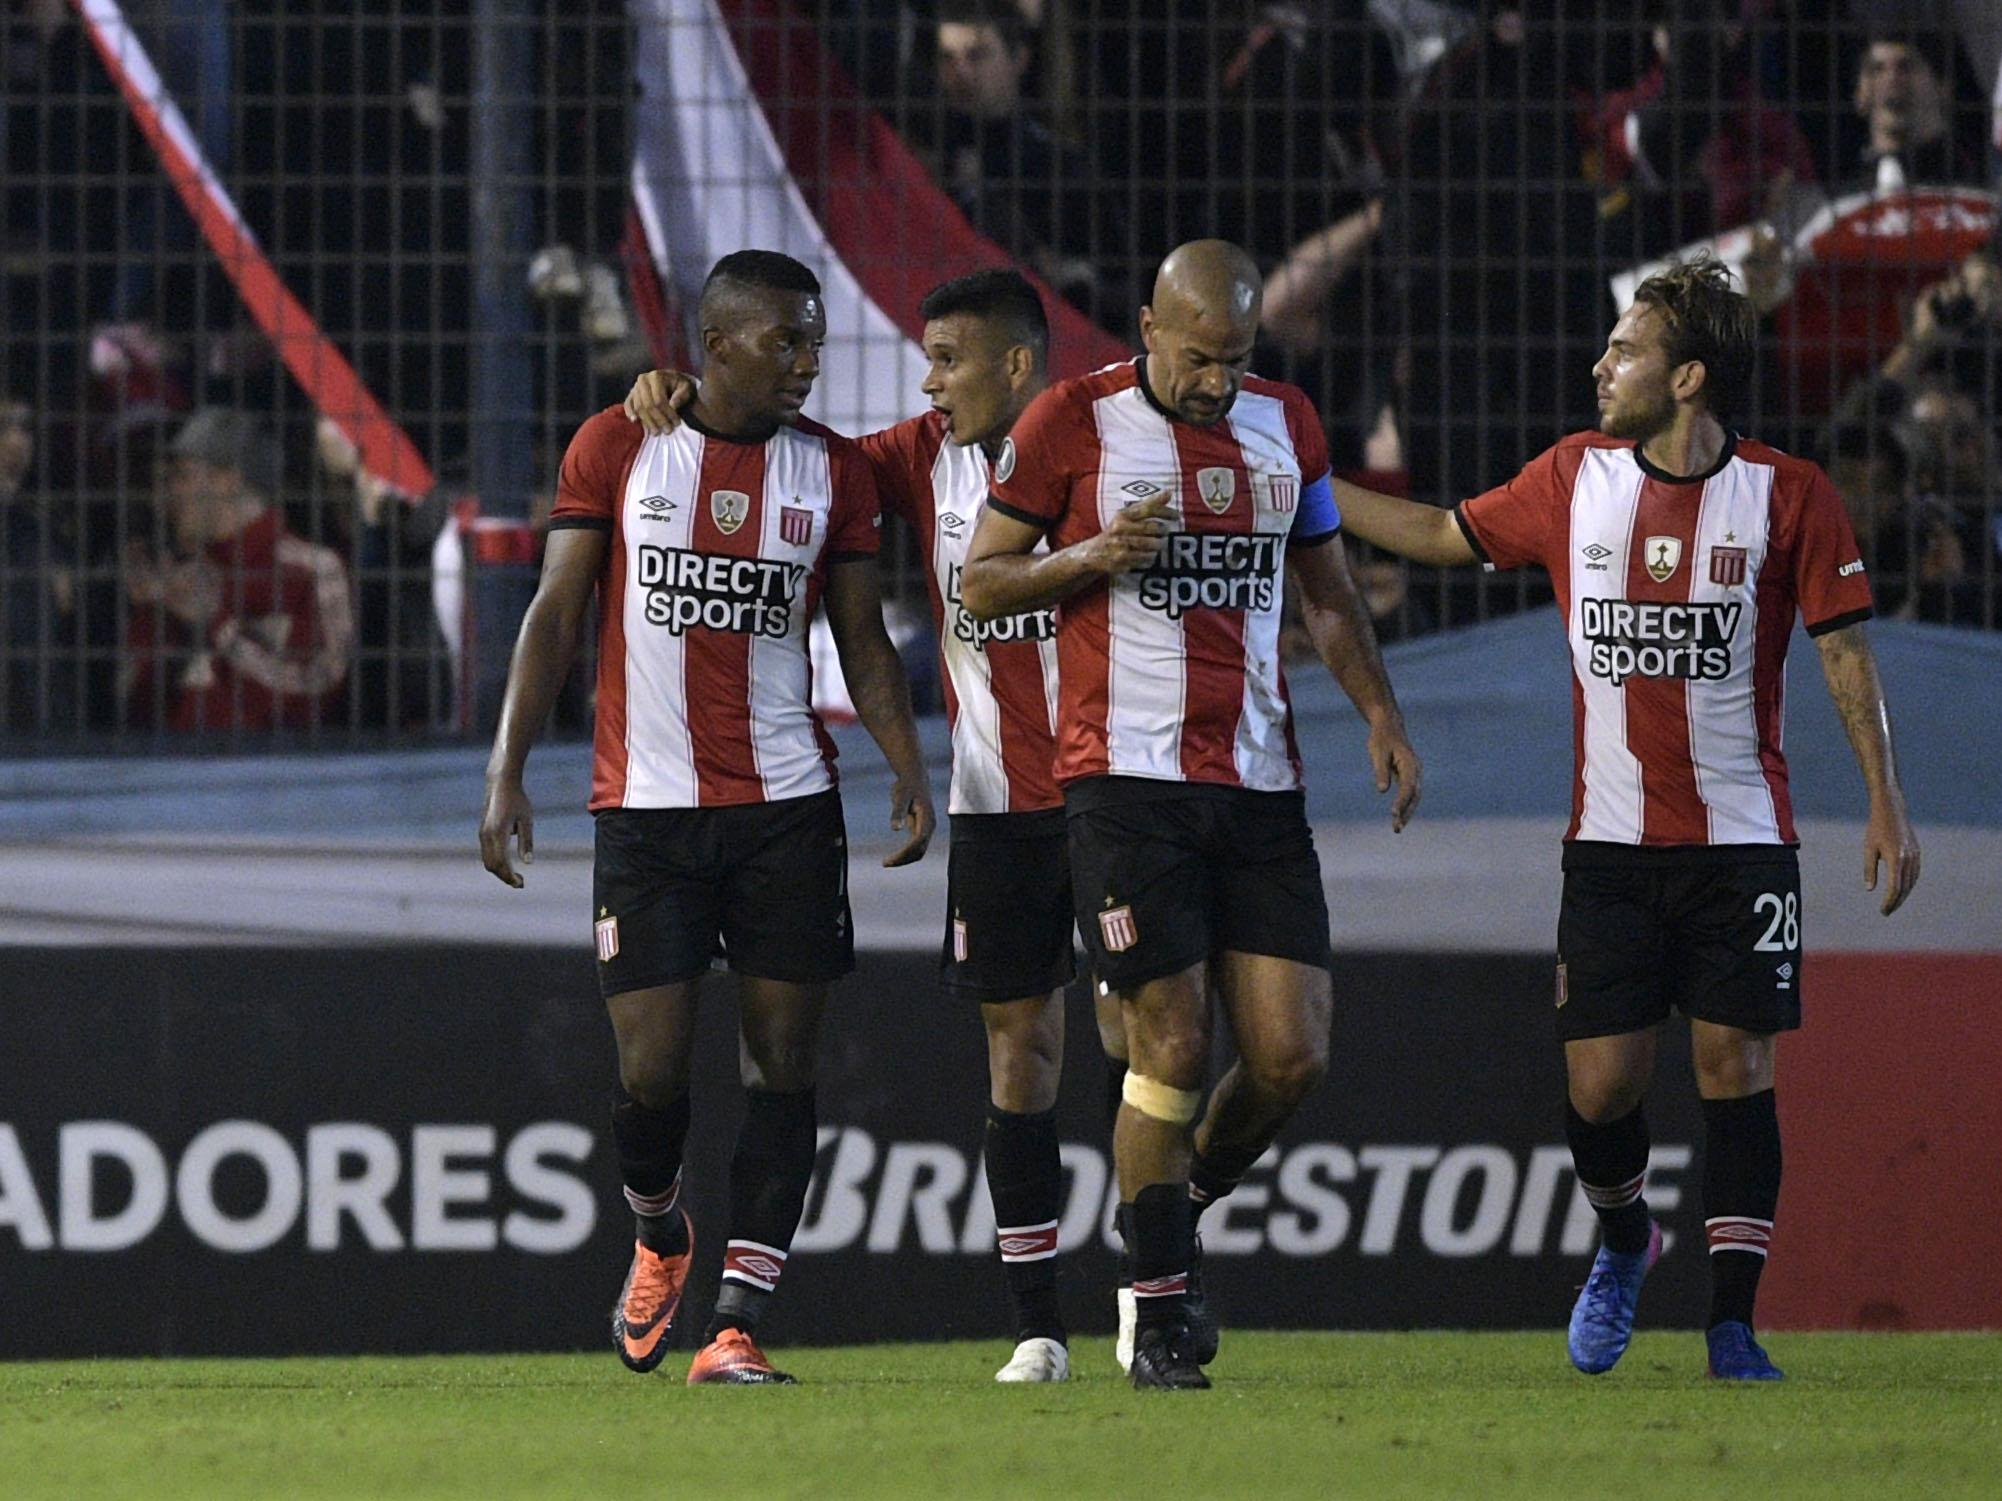 Argentinian footballer Federico Allende admits stabbing Estudiantes players with a needle